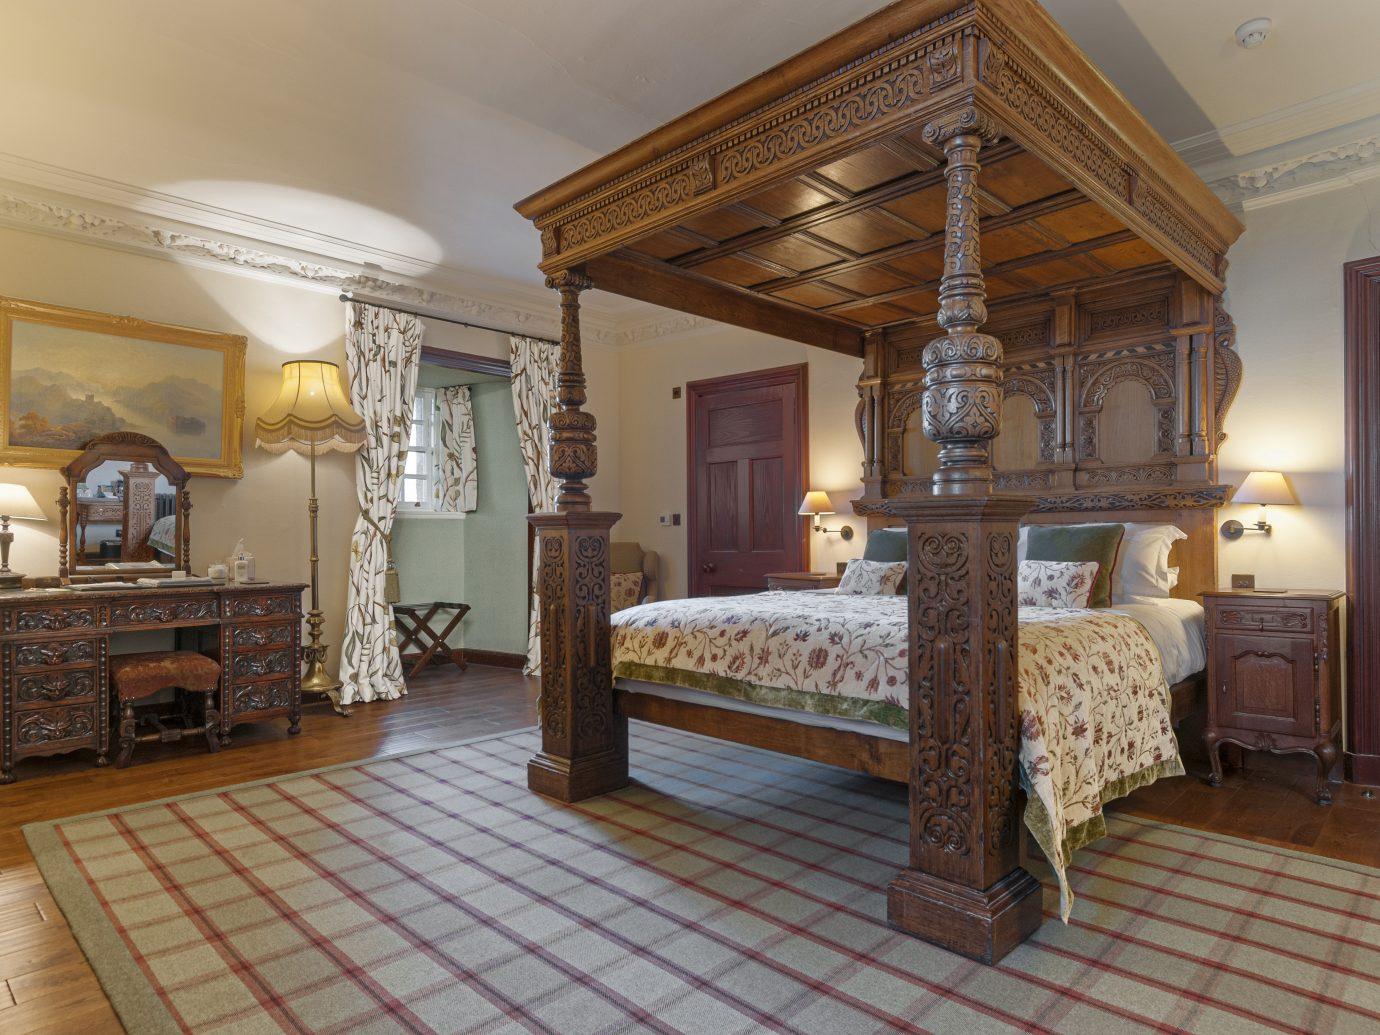 Bedroom at Barcaldine castle